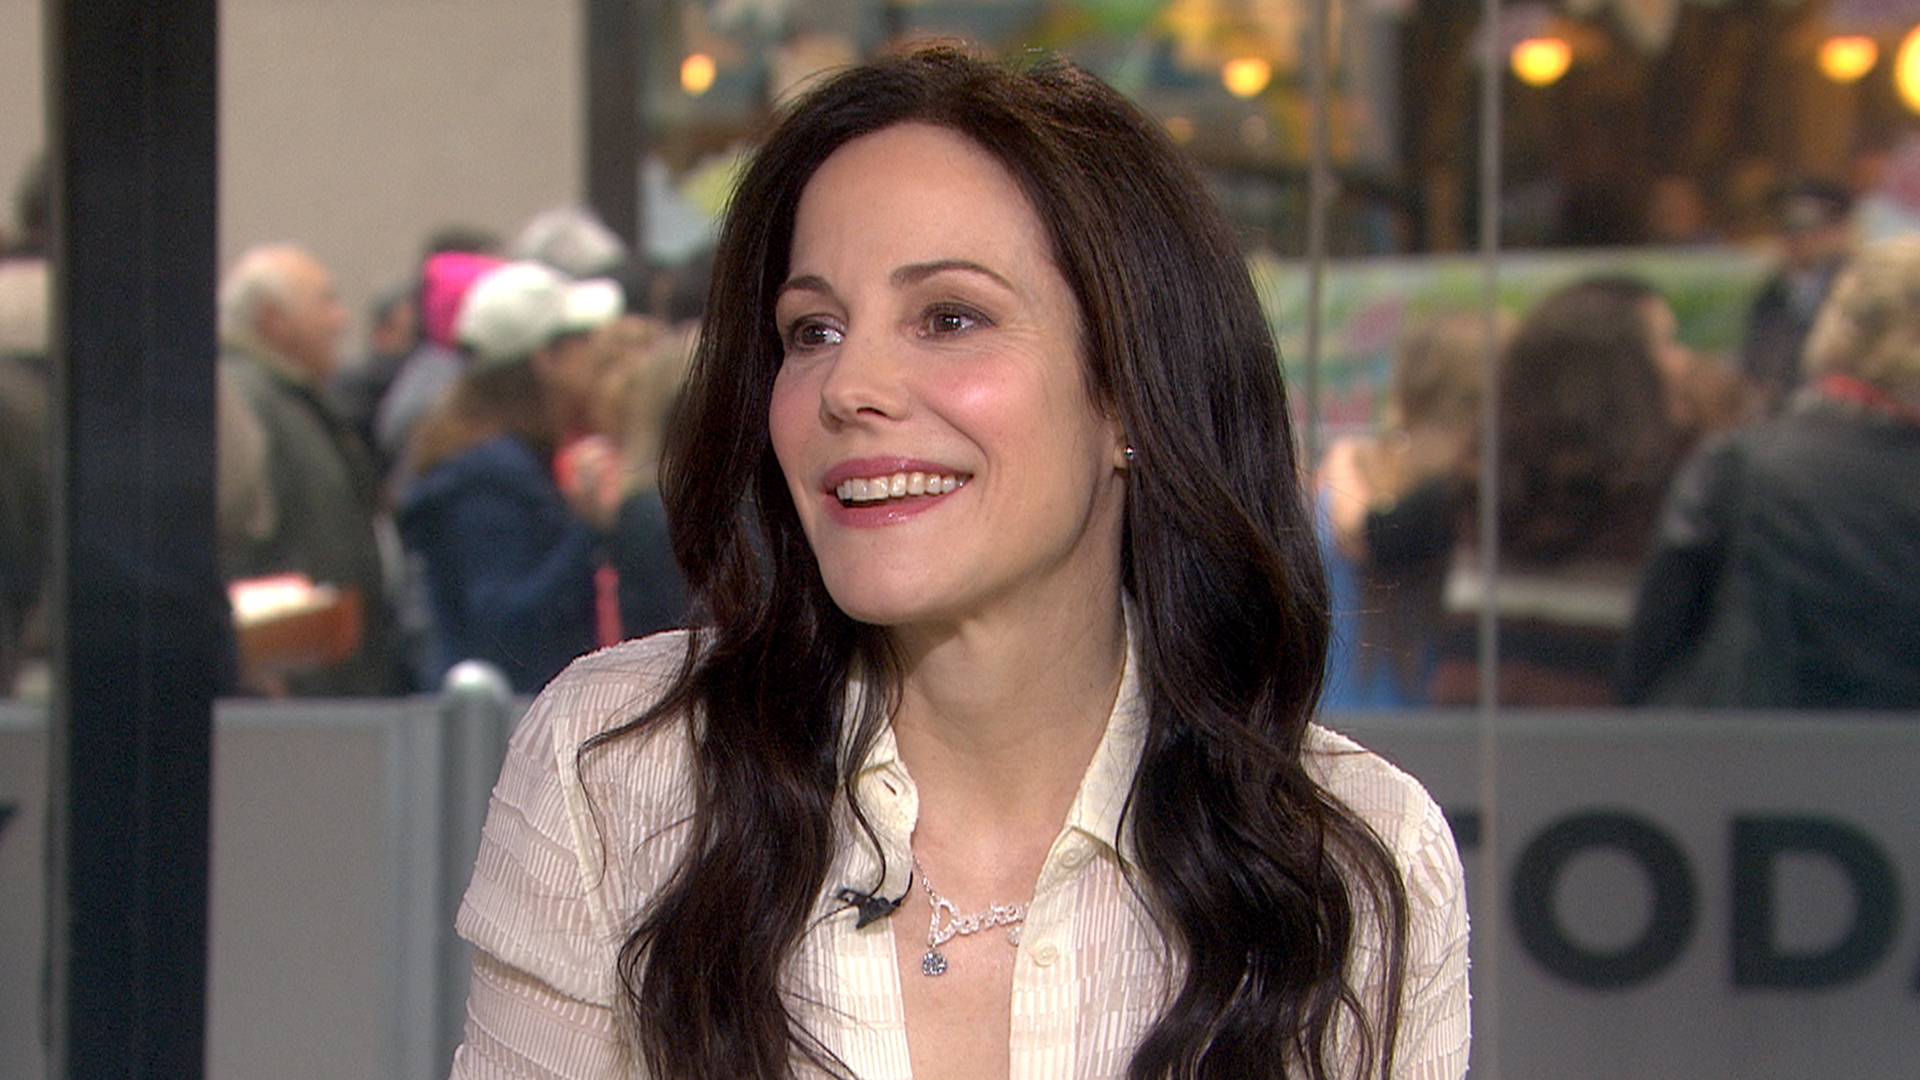 Mary louise parker wins our hearts in honest talk about breakups